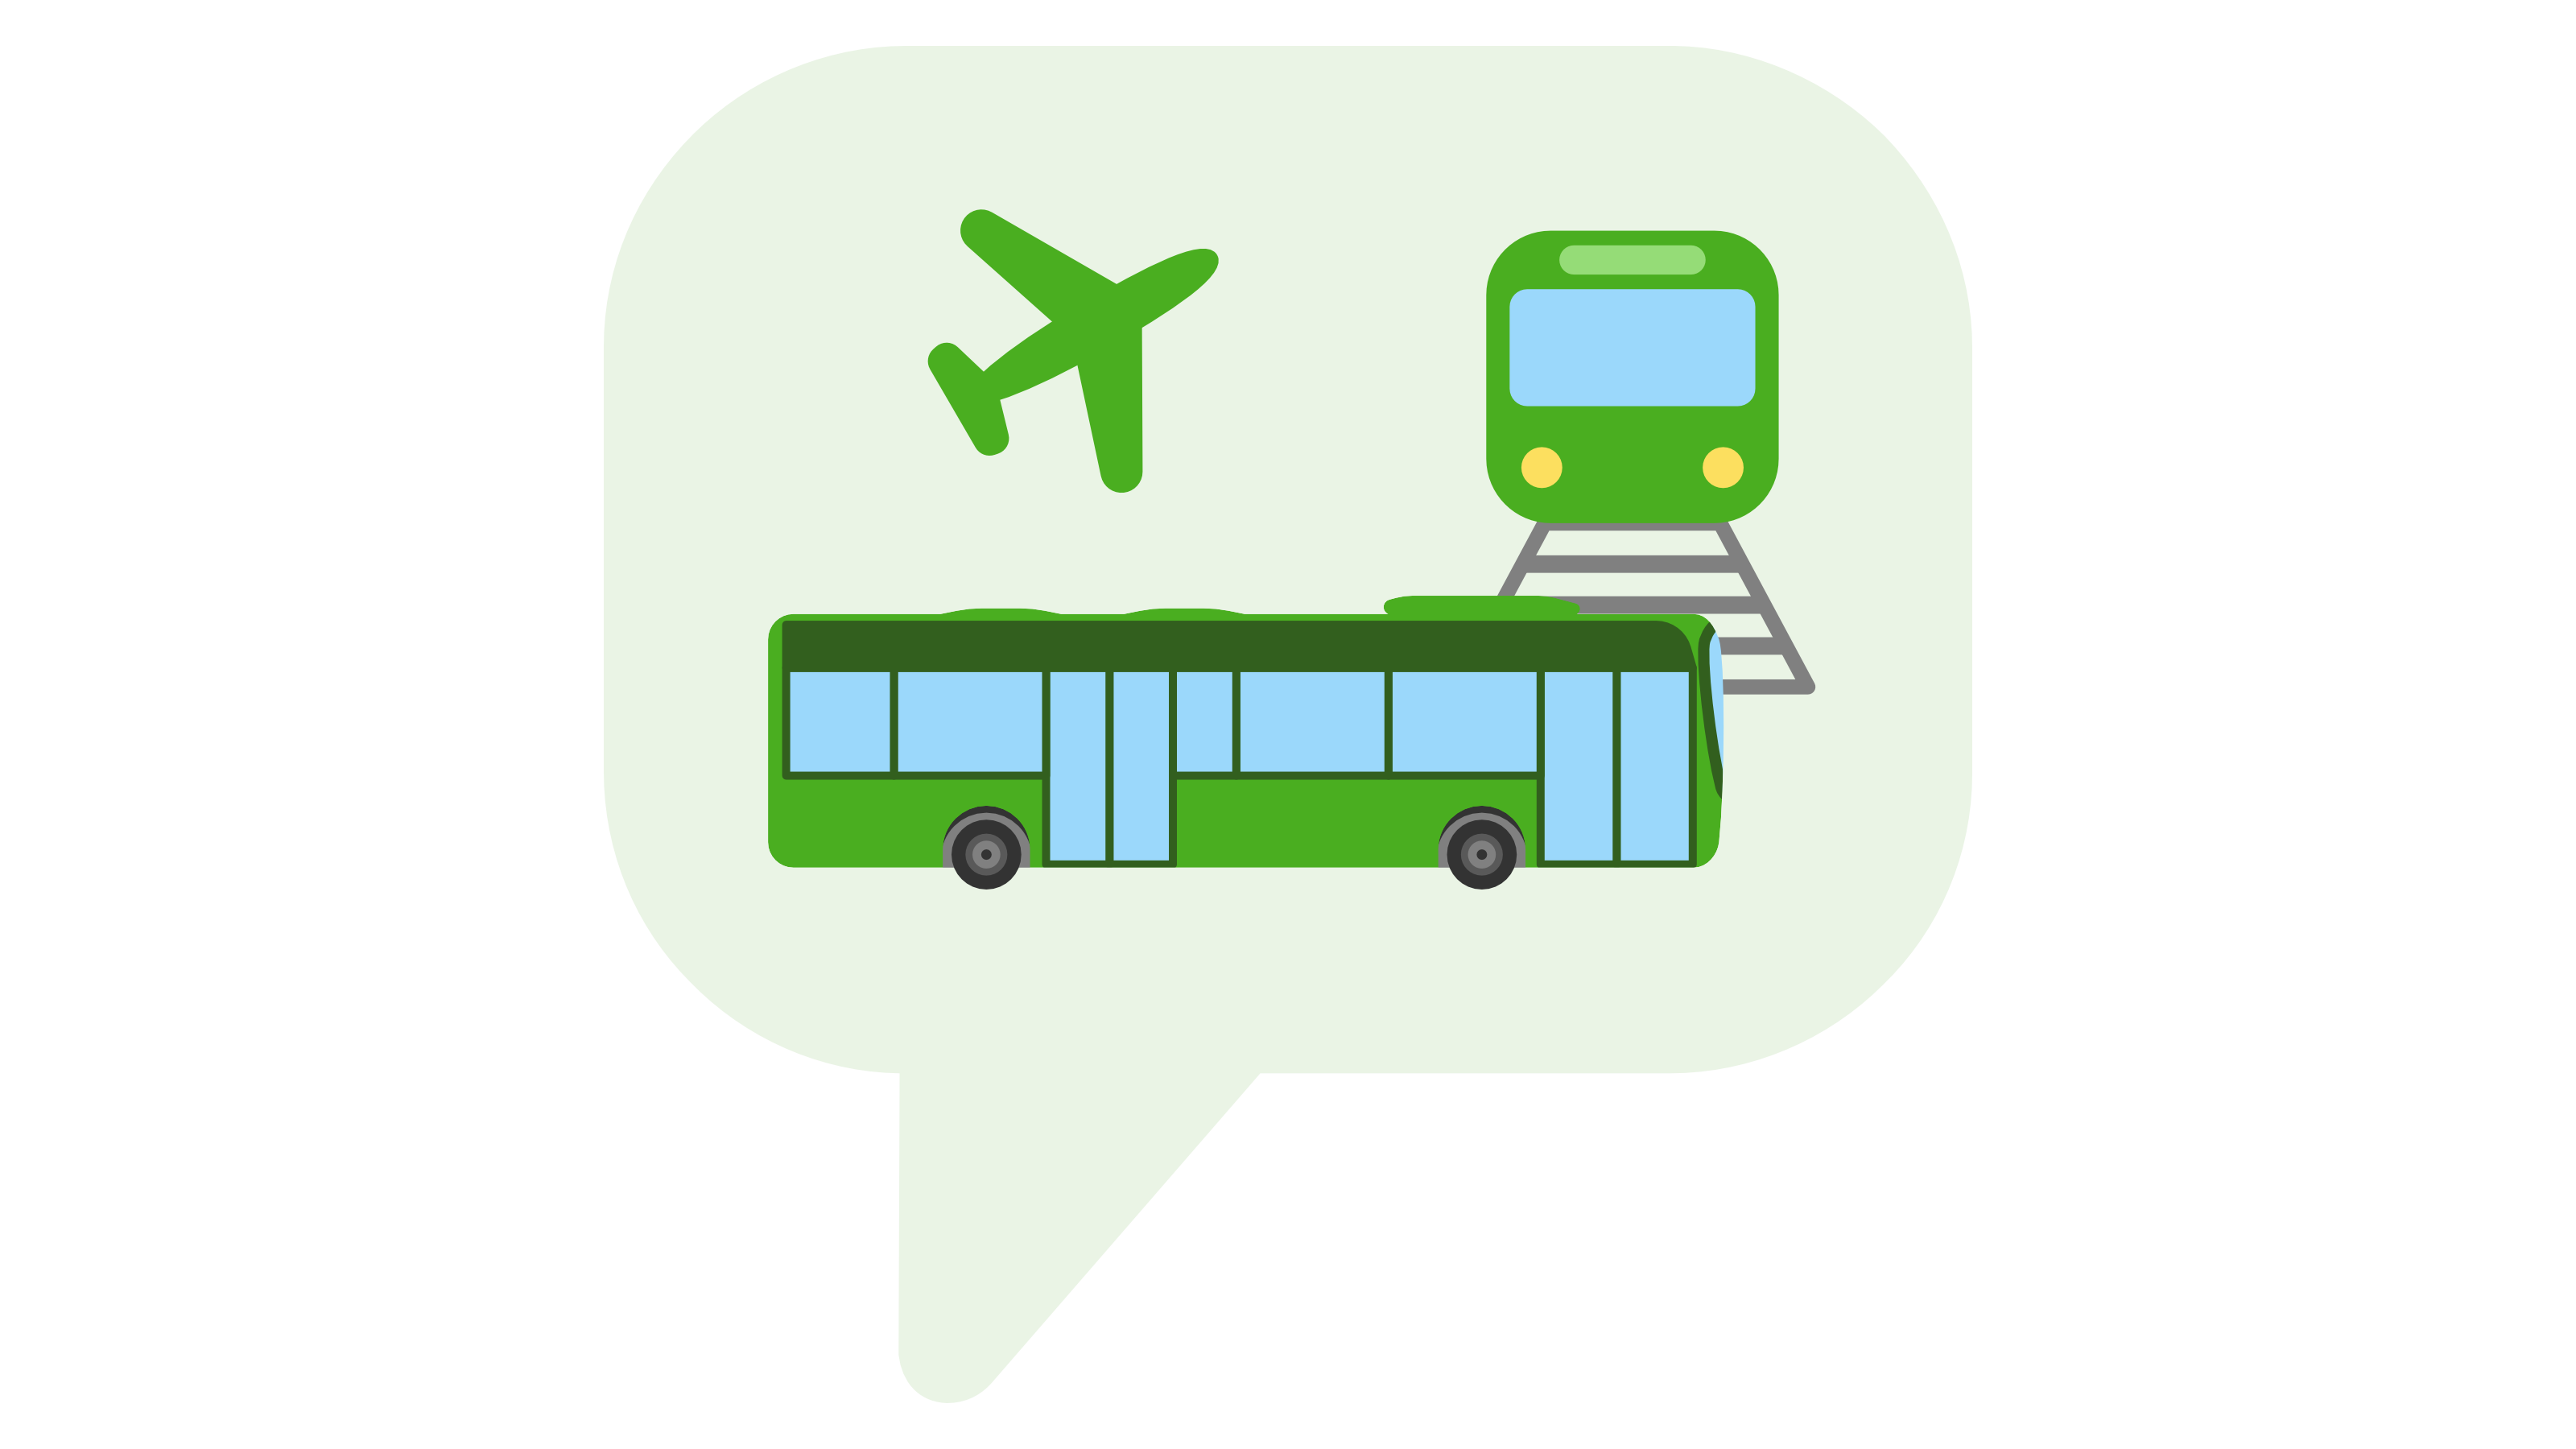 Messenger Customer Service Industries Public Transport